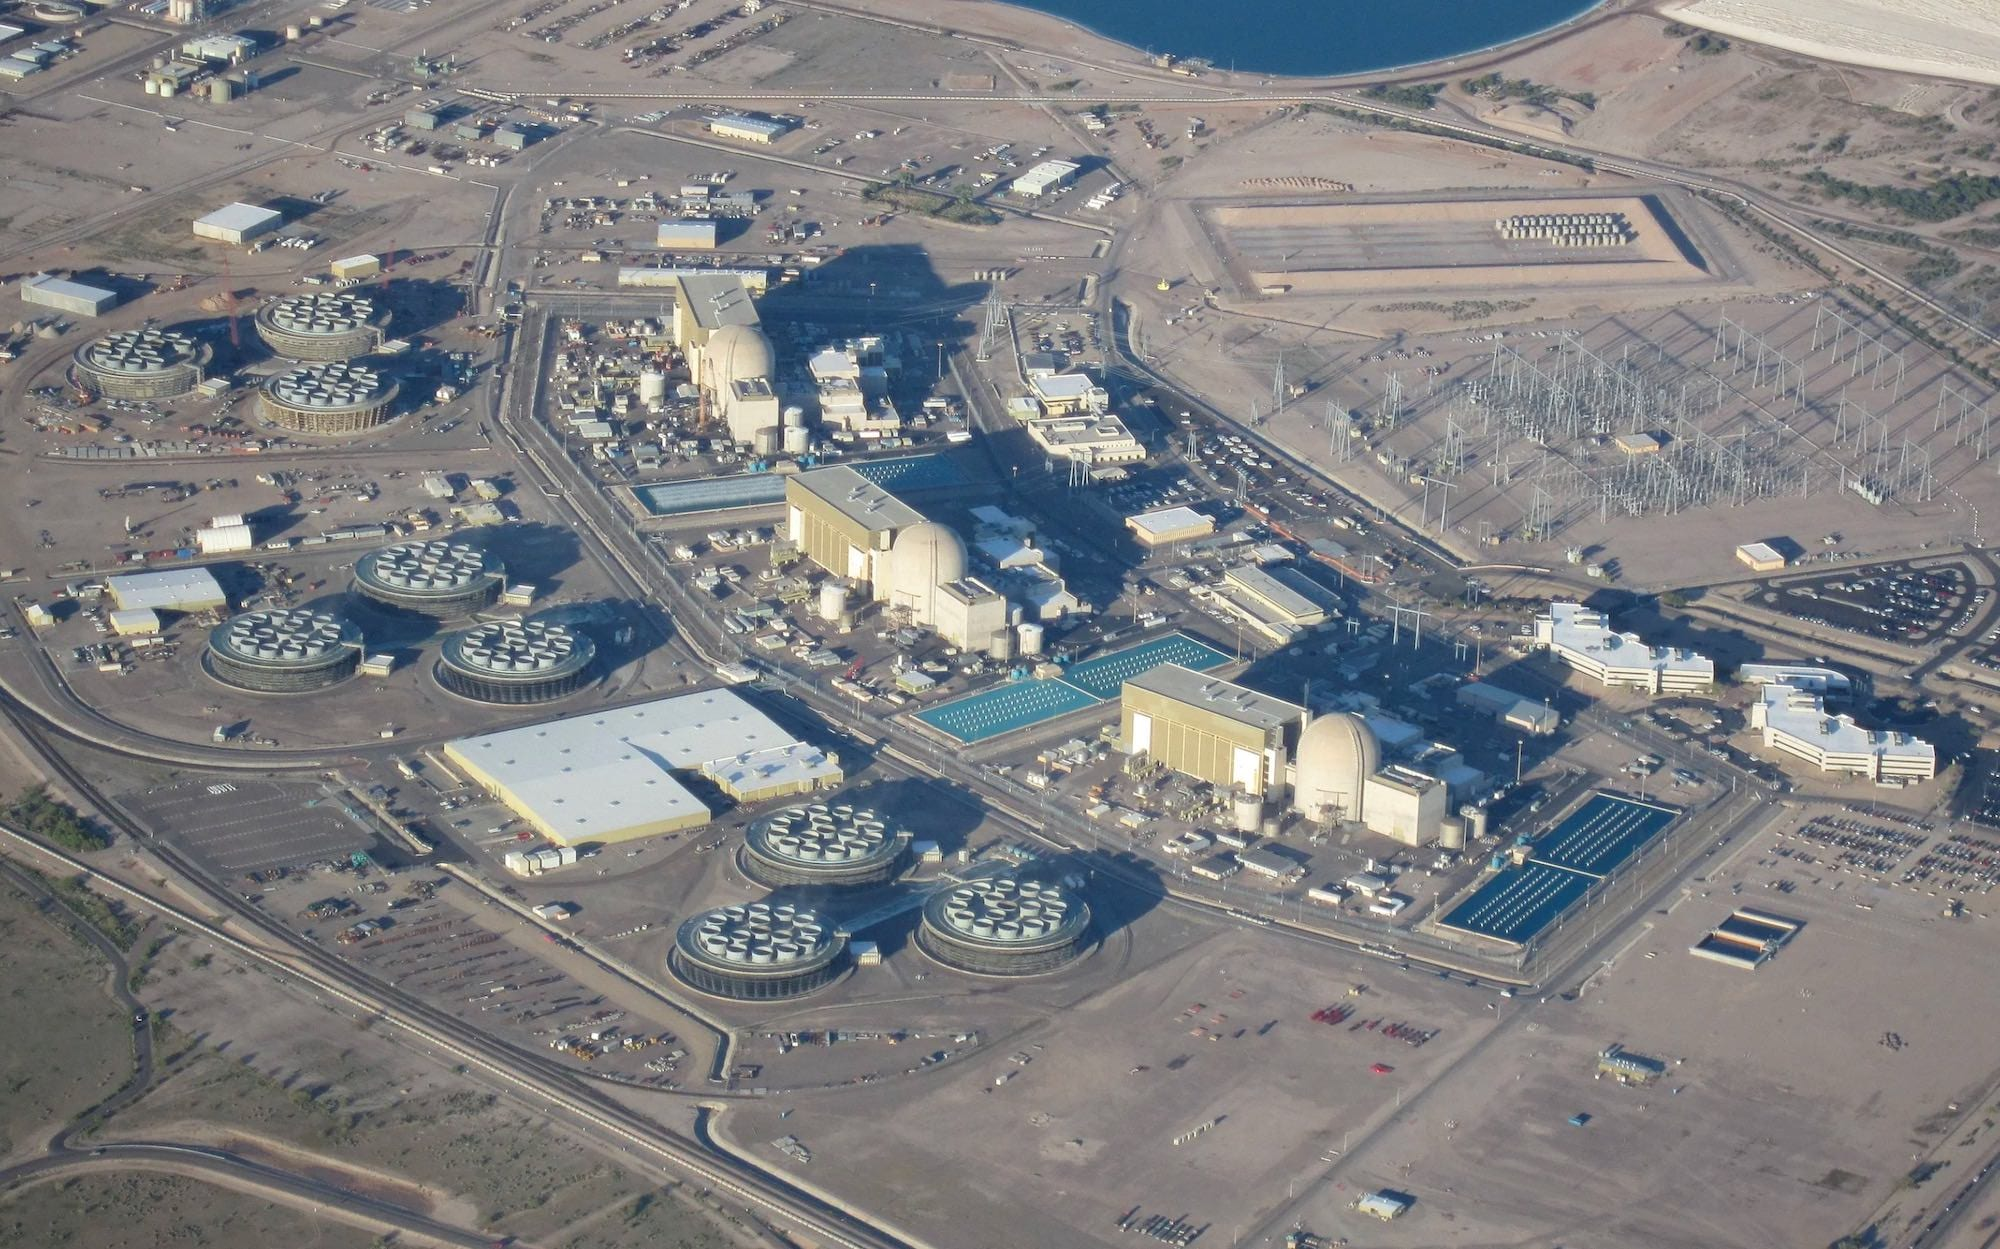 Mysterious drone swarm flew over Palo Verde Nuclear Power Plant